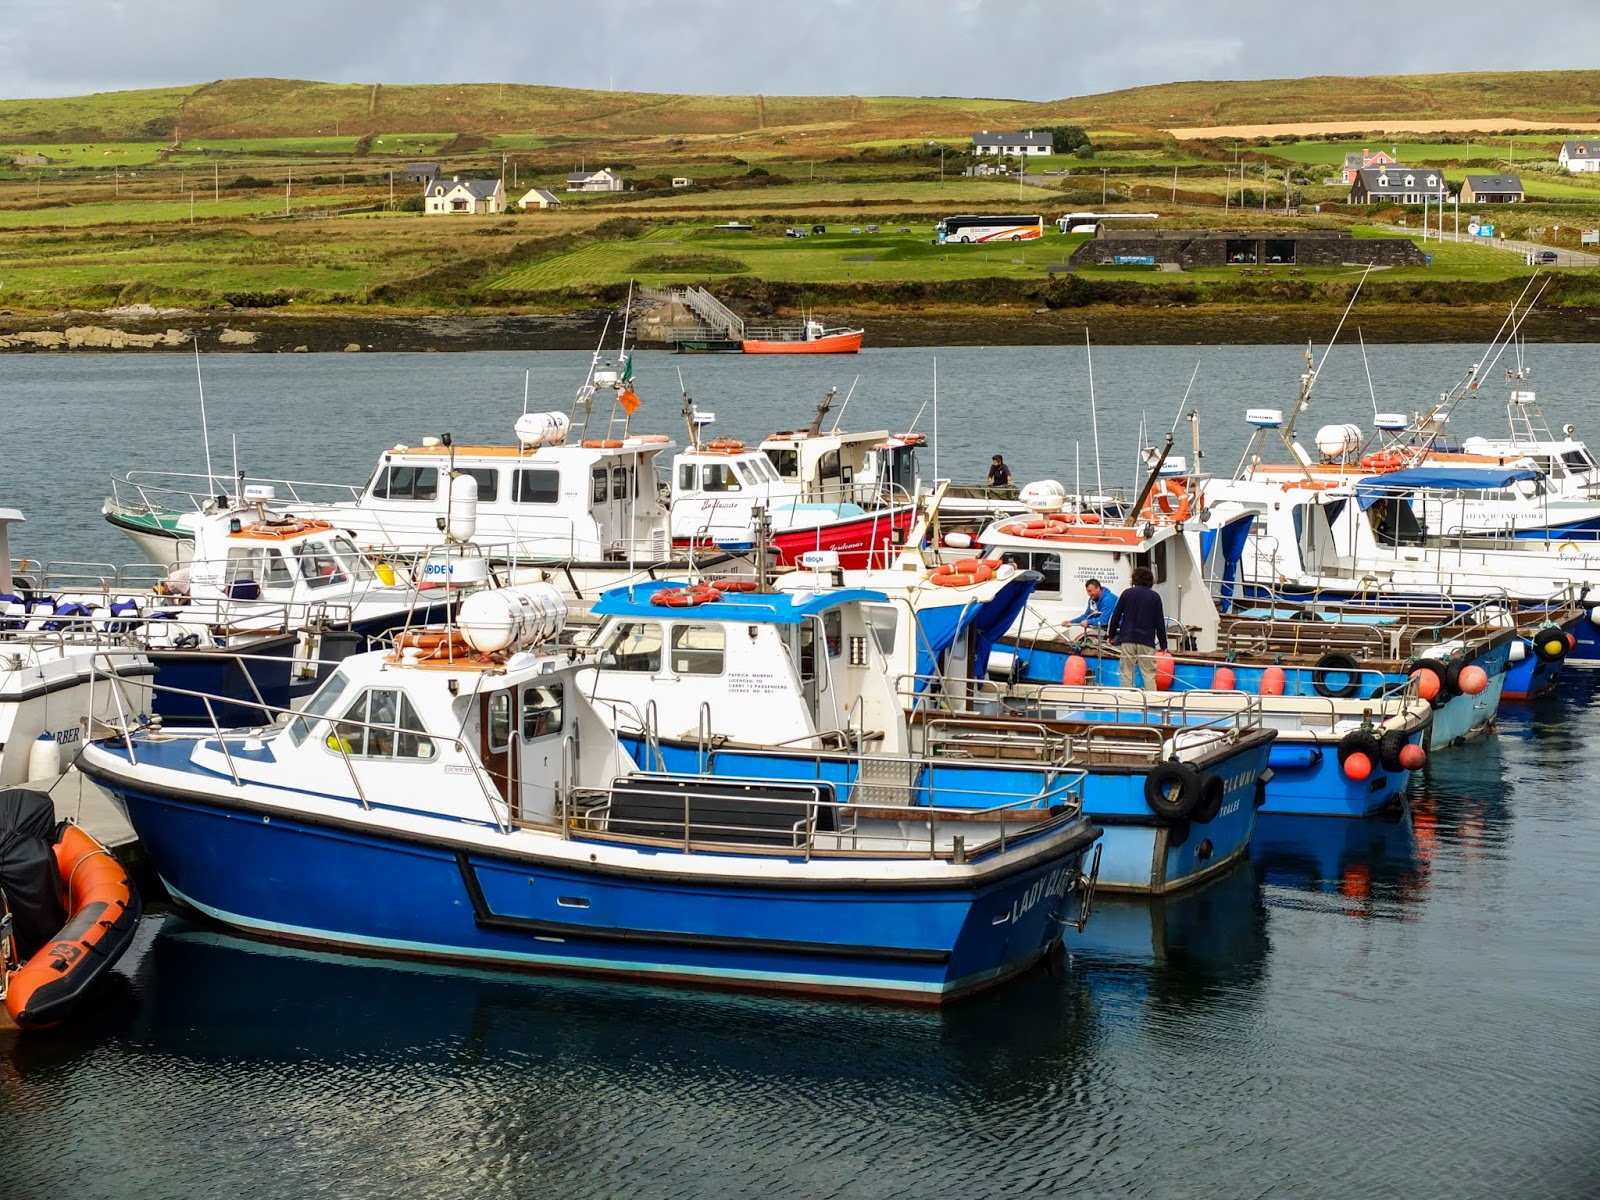 Boats docked along a pier in Portmagee, Co.Kerry.